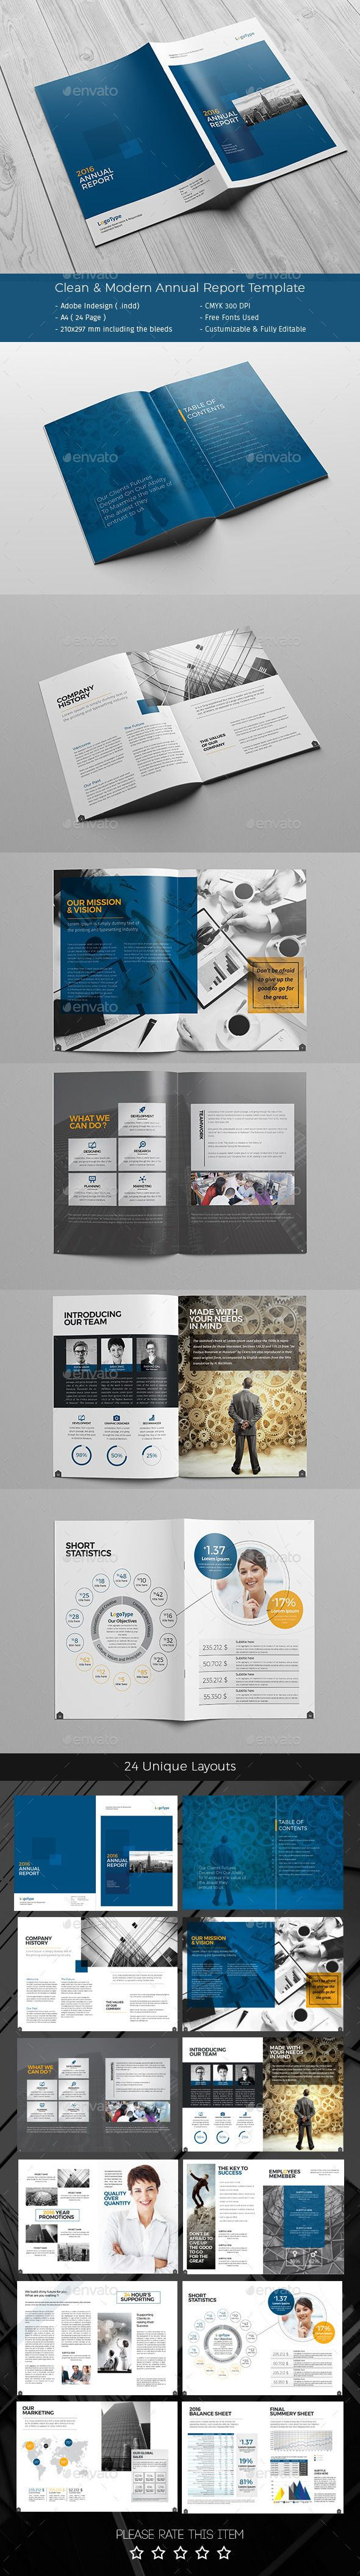 Annual Report #design Download: http://graphicriver.net/item/annual-report-template/12313507?ref=ksioks